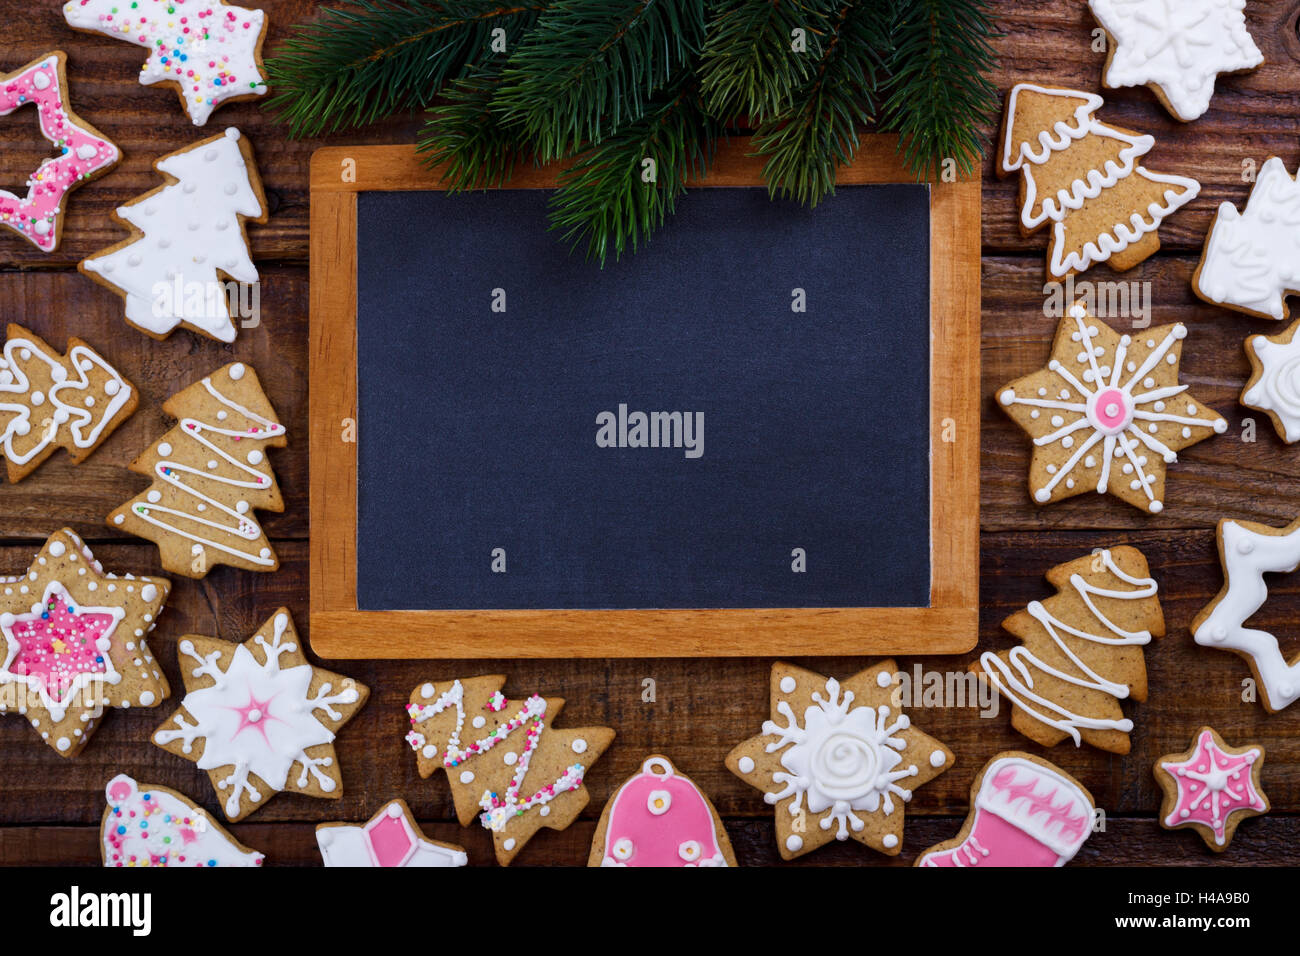 Christmas cookies and vintage black board for text. Holiday background - Stock Image